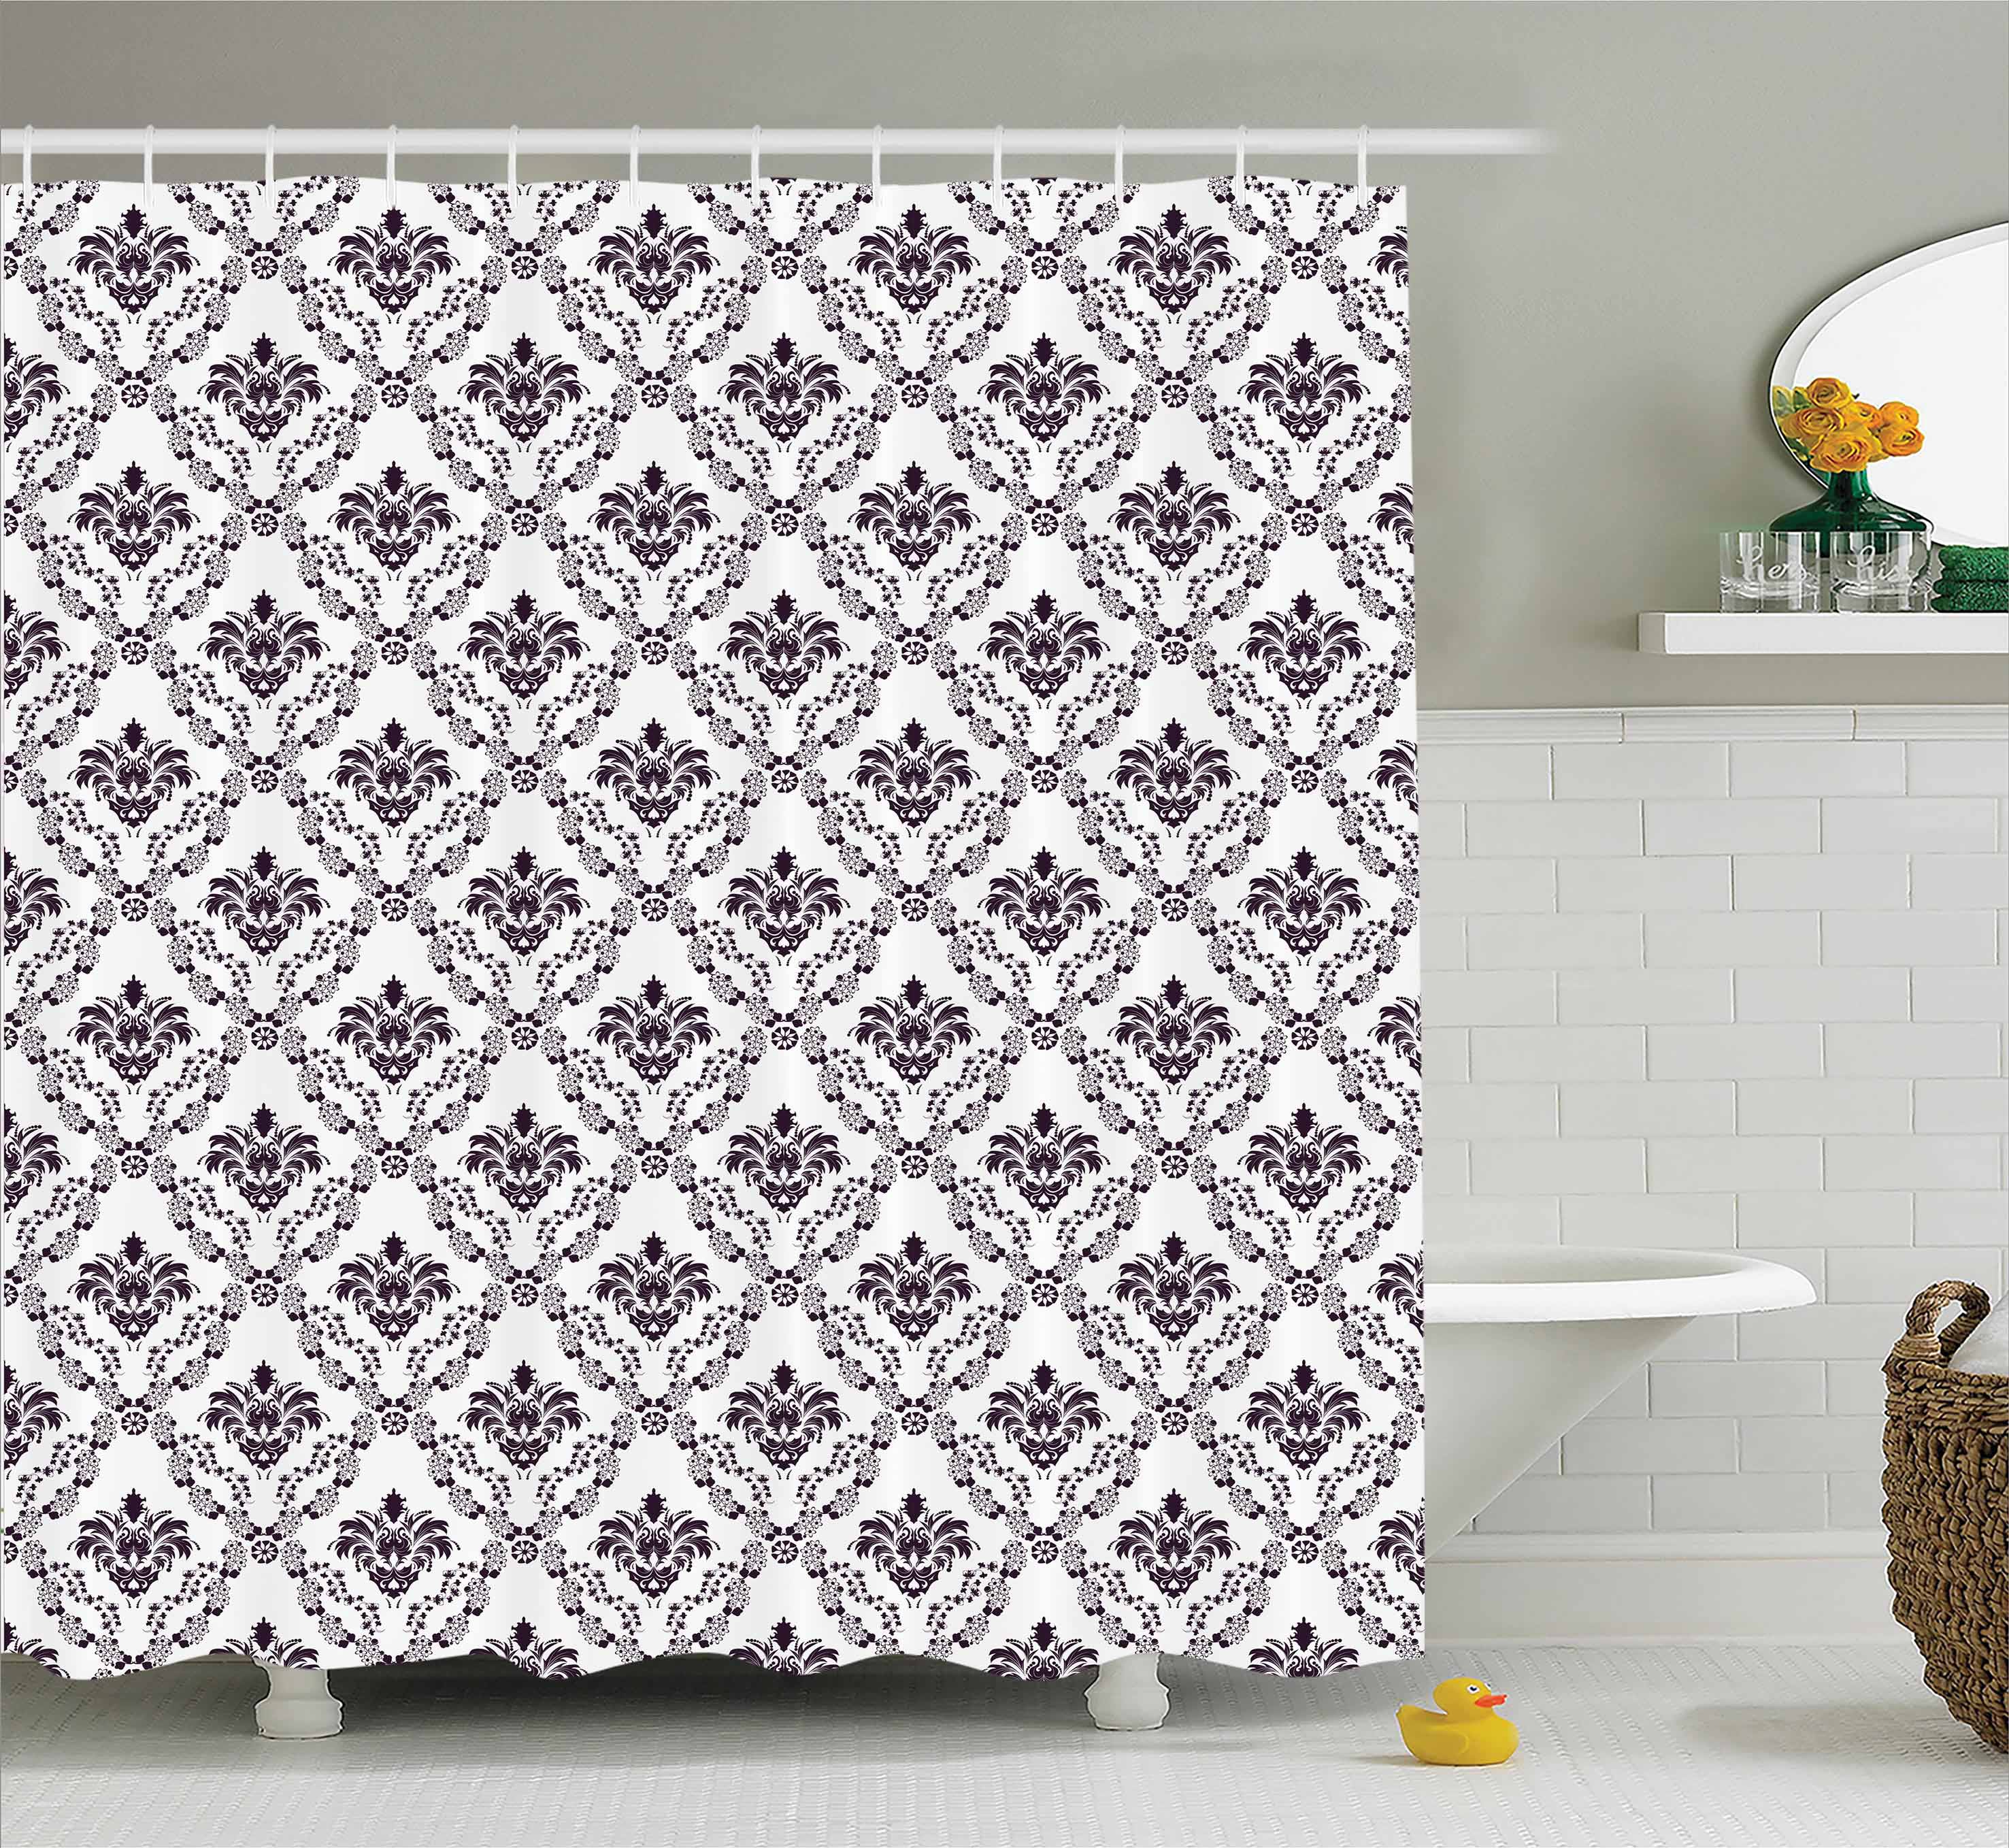 Damask Shower Curtain Set, Traditional Complex Chained Double Face Damask  Lines Internal Patterning Illustration, Bathroom Decor, Brown White, By  Ambesonne ...